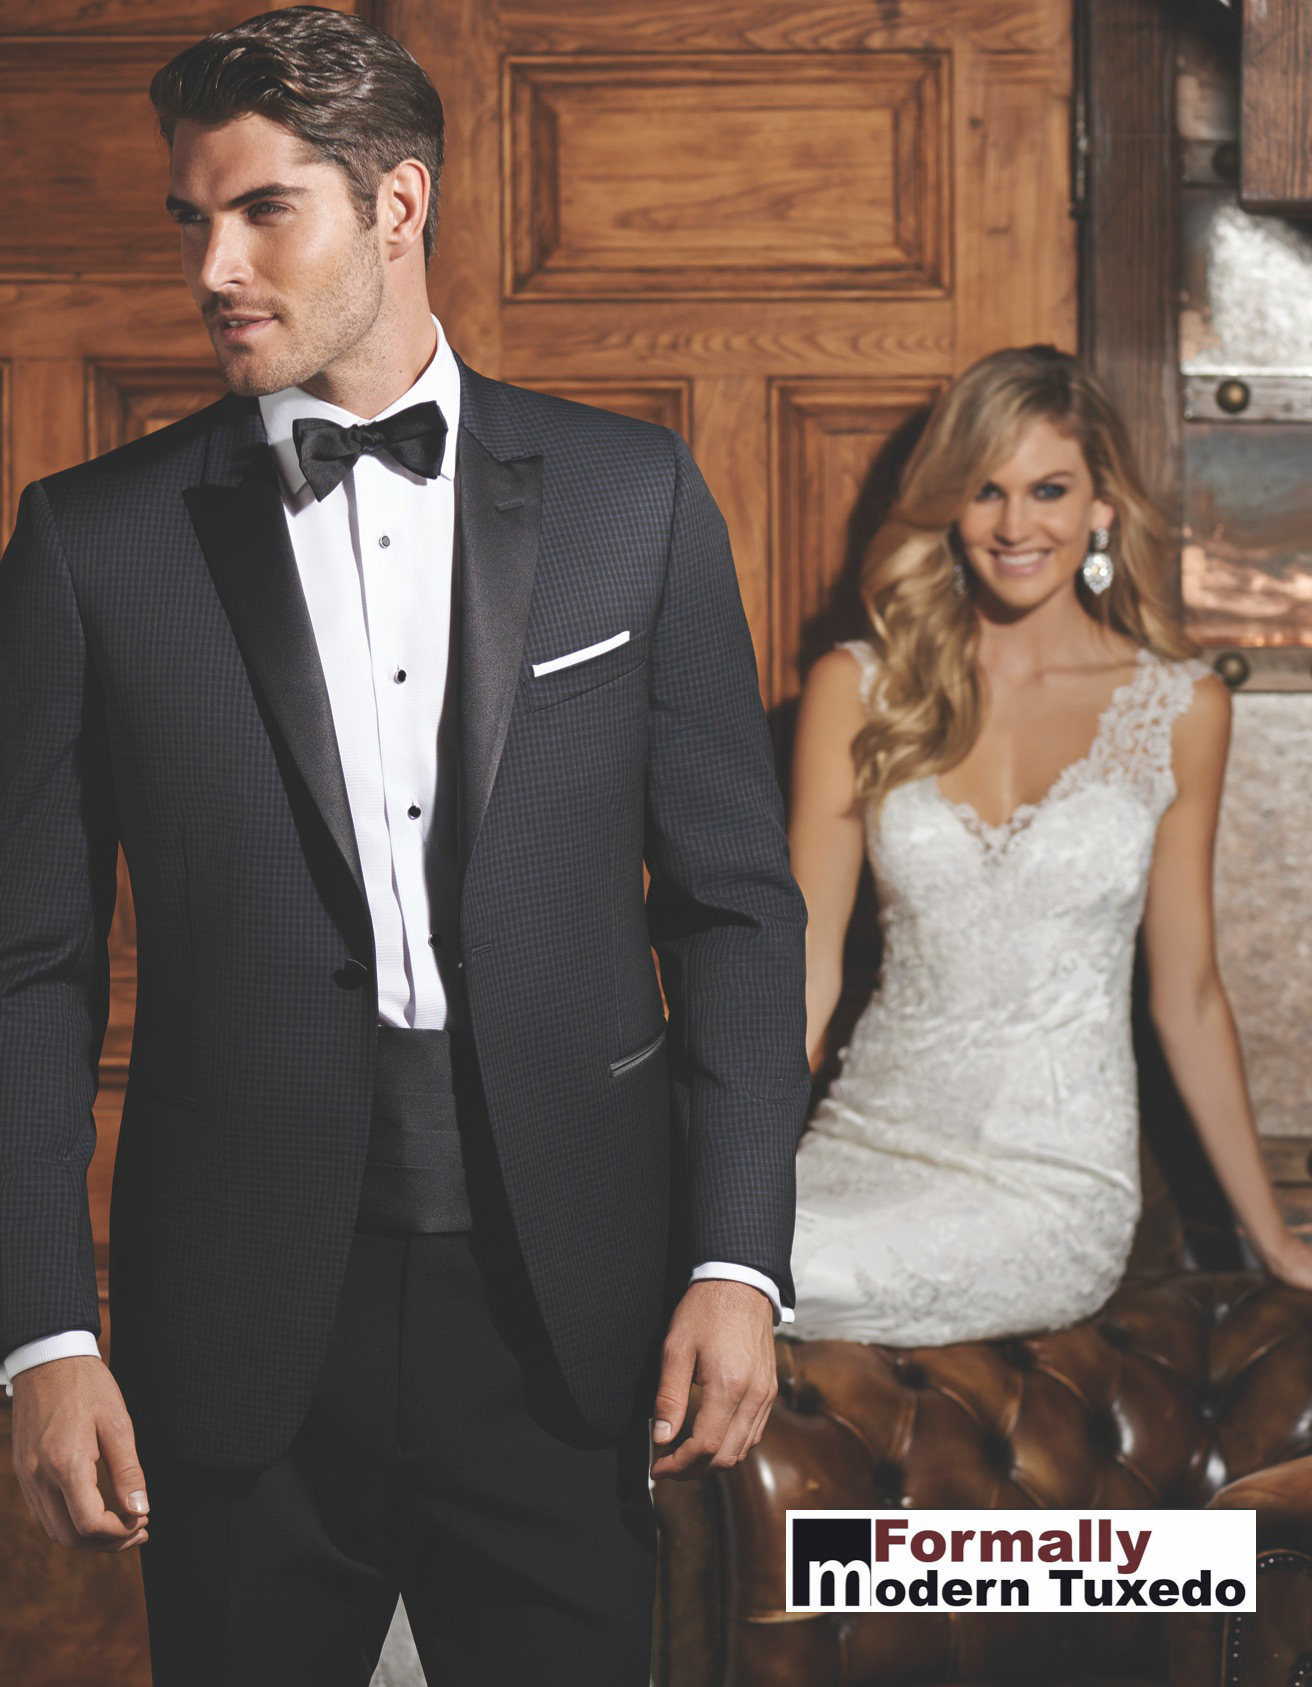 Formally Modern Tuxedo in Chicago, Illinois